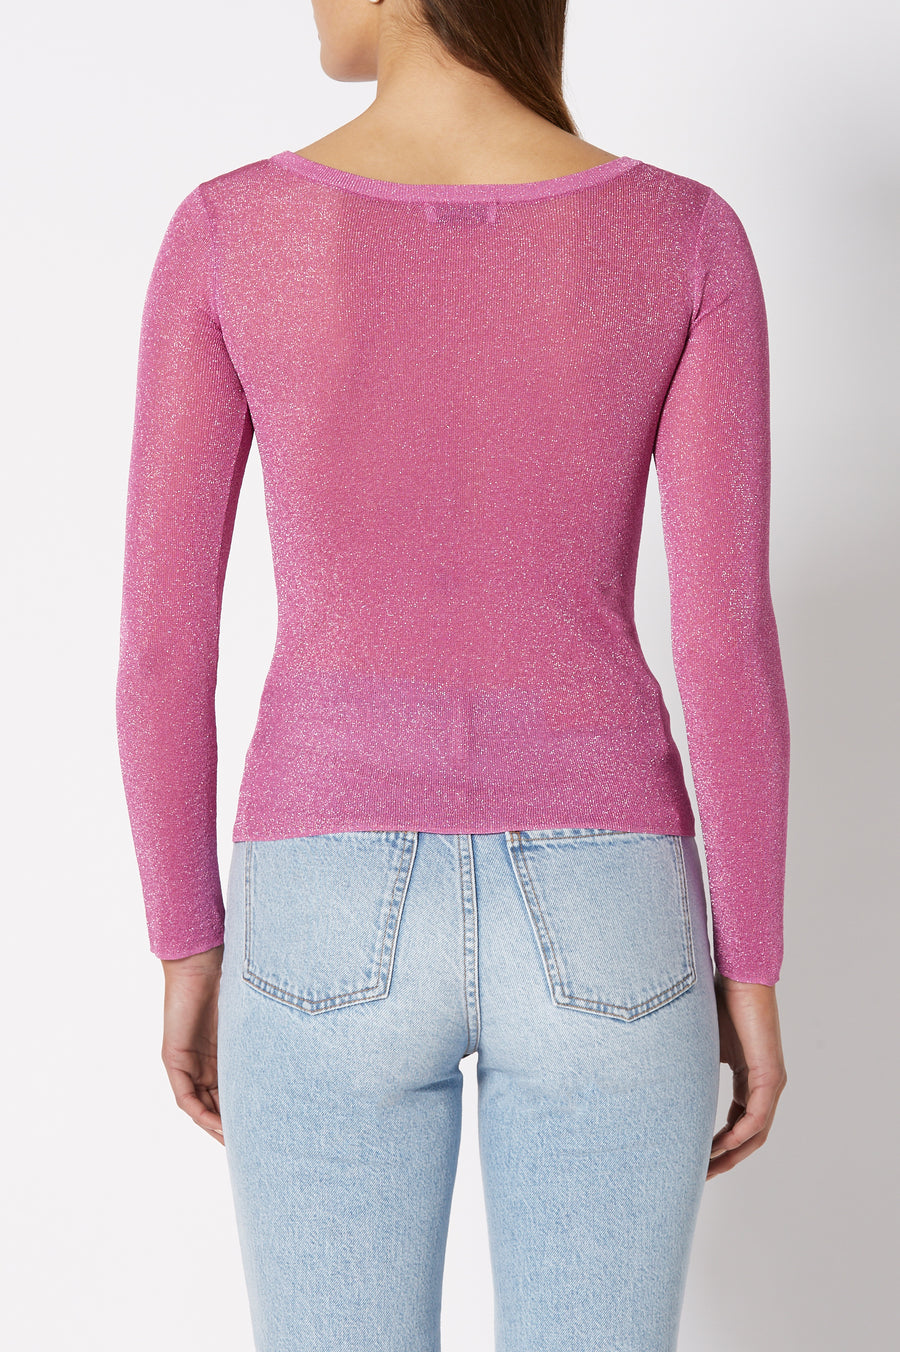 Sparkle Rib Boat Neck Sweater has a boatneck and is designed for a slim fit, color Fuschia